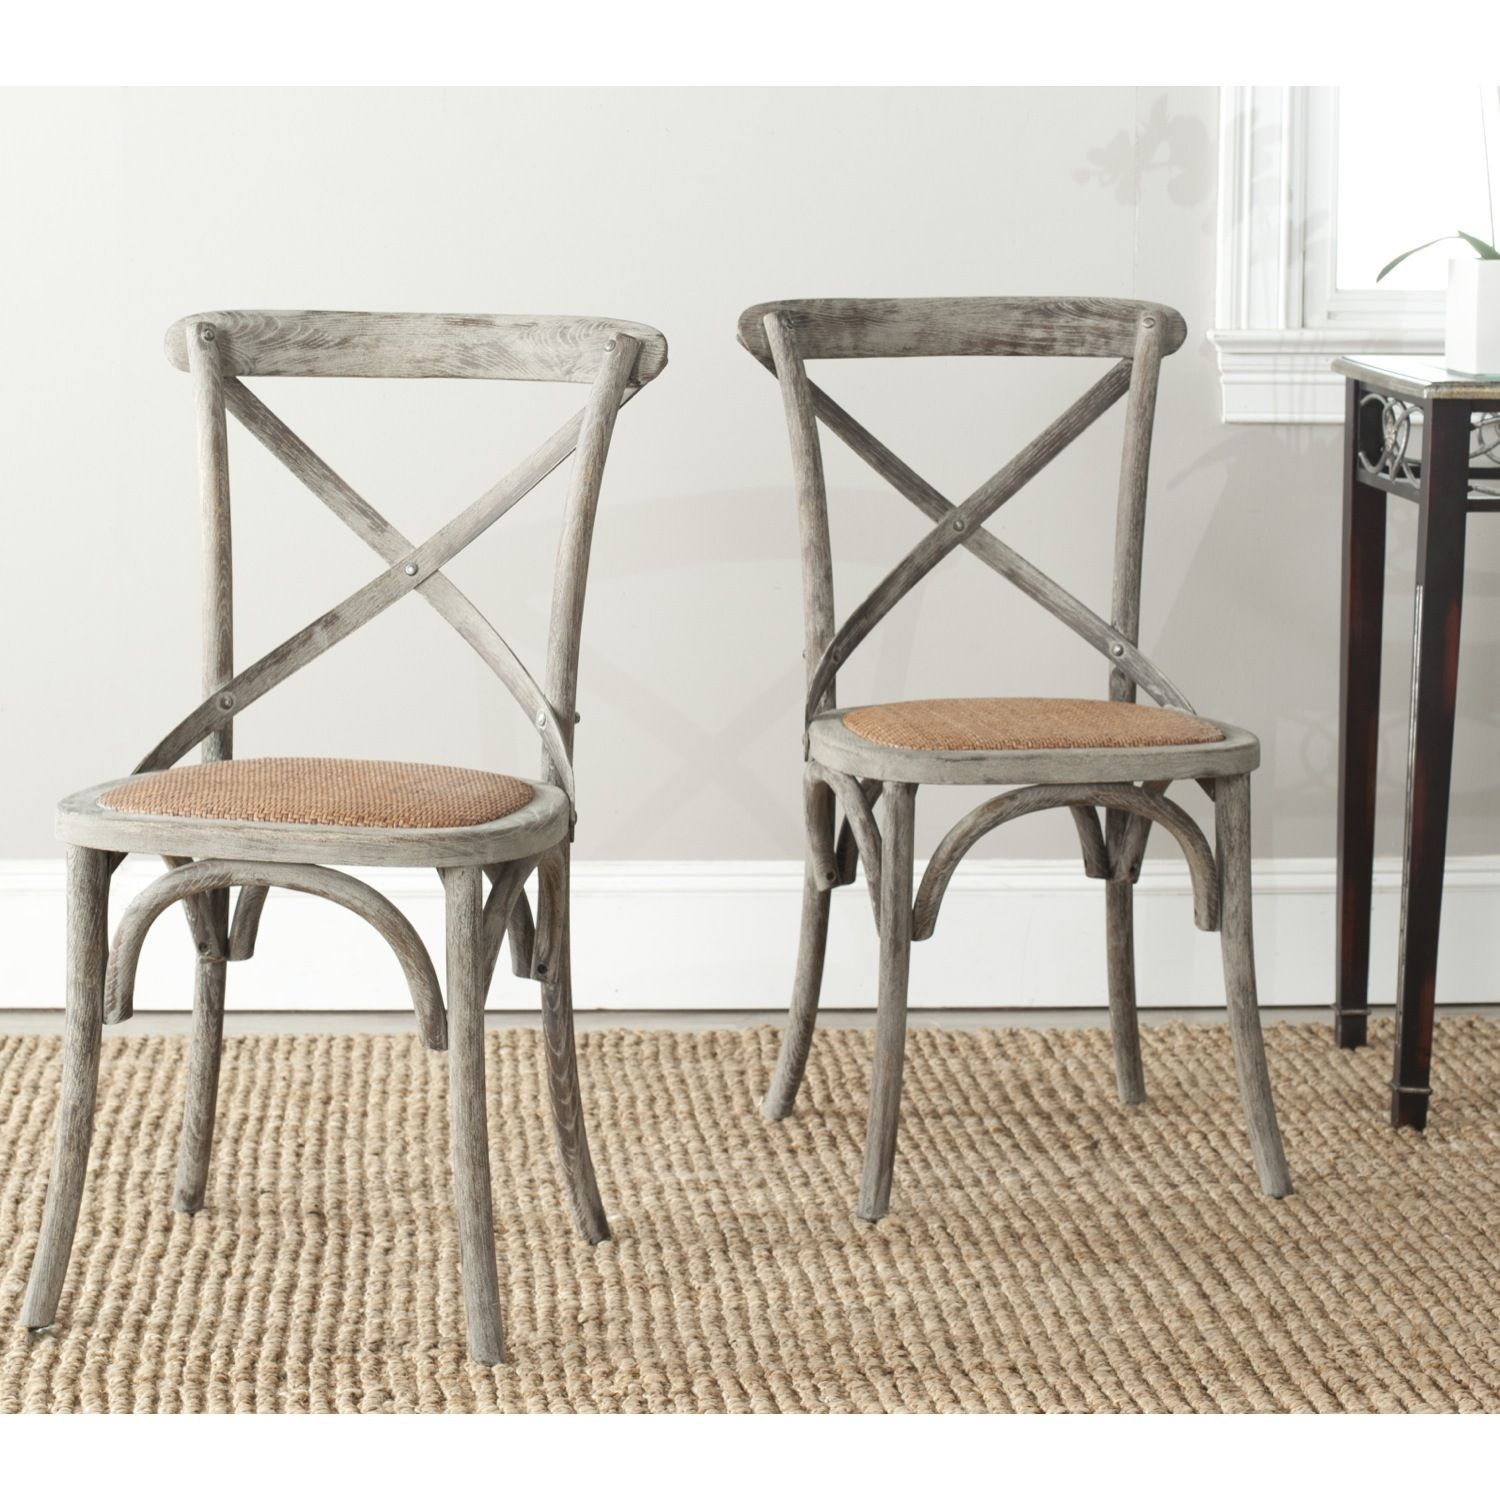 This Set Of Two Safavieh Franklin X Back Chairs Is Crafted Solid American Oak Dining Room